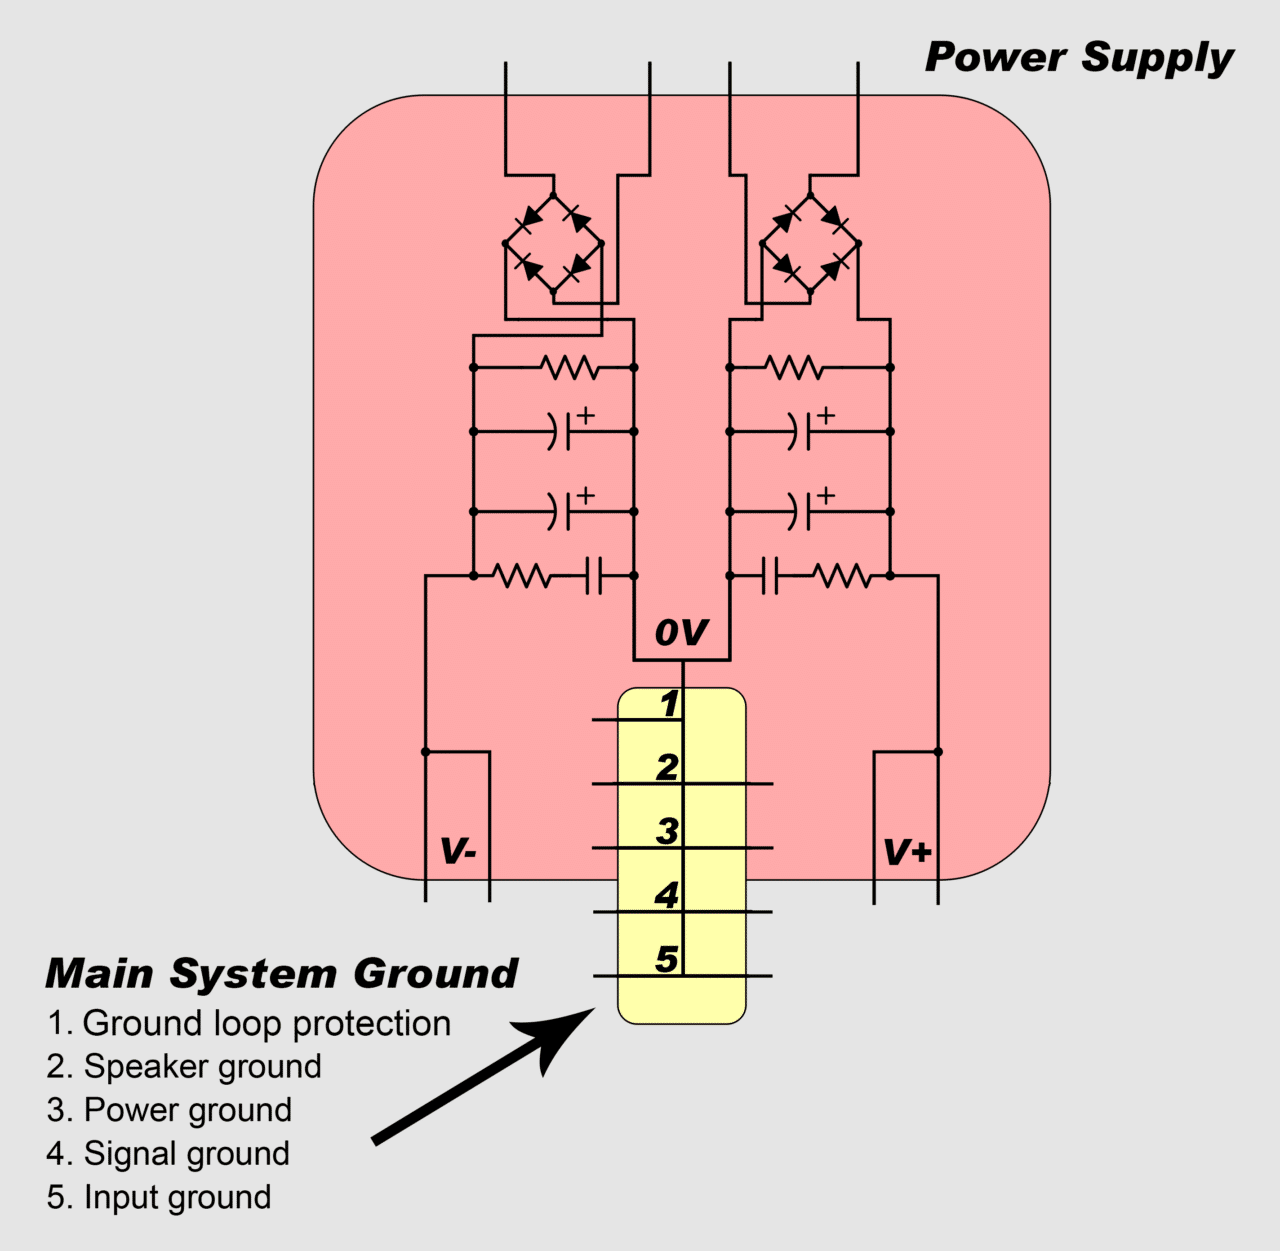 How To Design And Build An Amplifier With The Tda2050 Circuit Basics Common Electric Guitar Wiring Diagrams Amplified Parts Ground Networks Are Connected Main System In A Particular Order So That High Currents Only Flow Through Low Current Grounds For Very